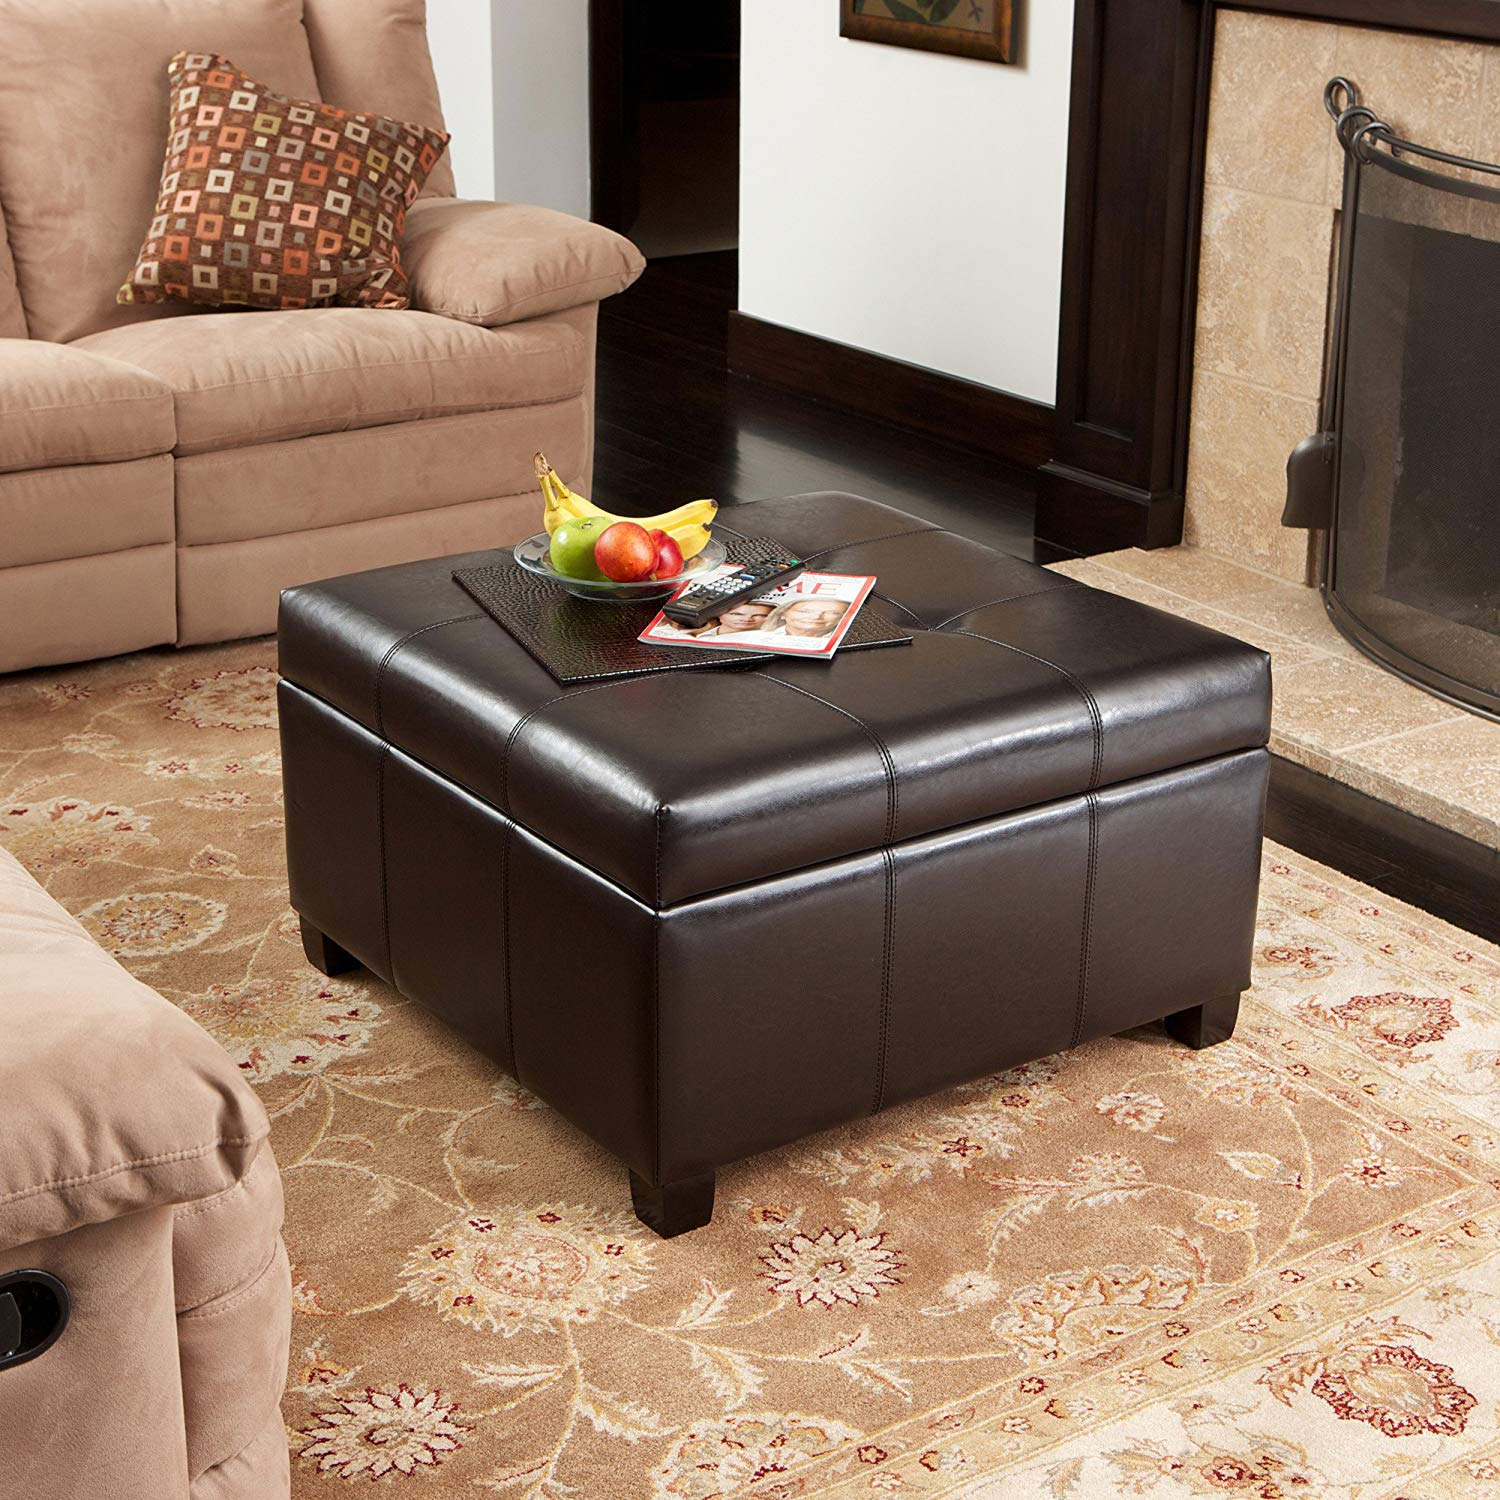 Traveller Location: Best Selling | Storage Ottoman | Coffee Table | Square Shaped |  Premium Bonded Leather in Espresso Brown: Kitchen & Dining